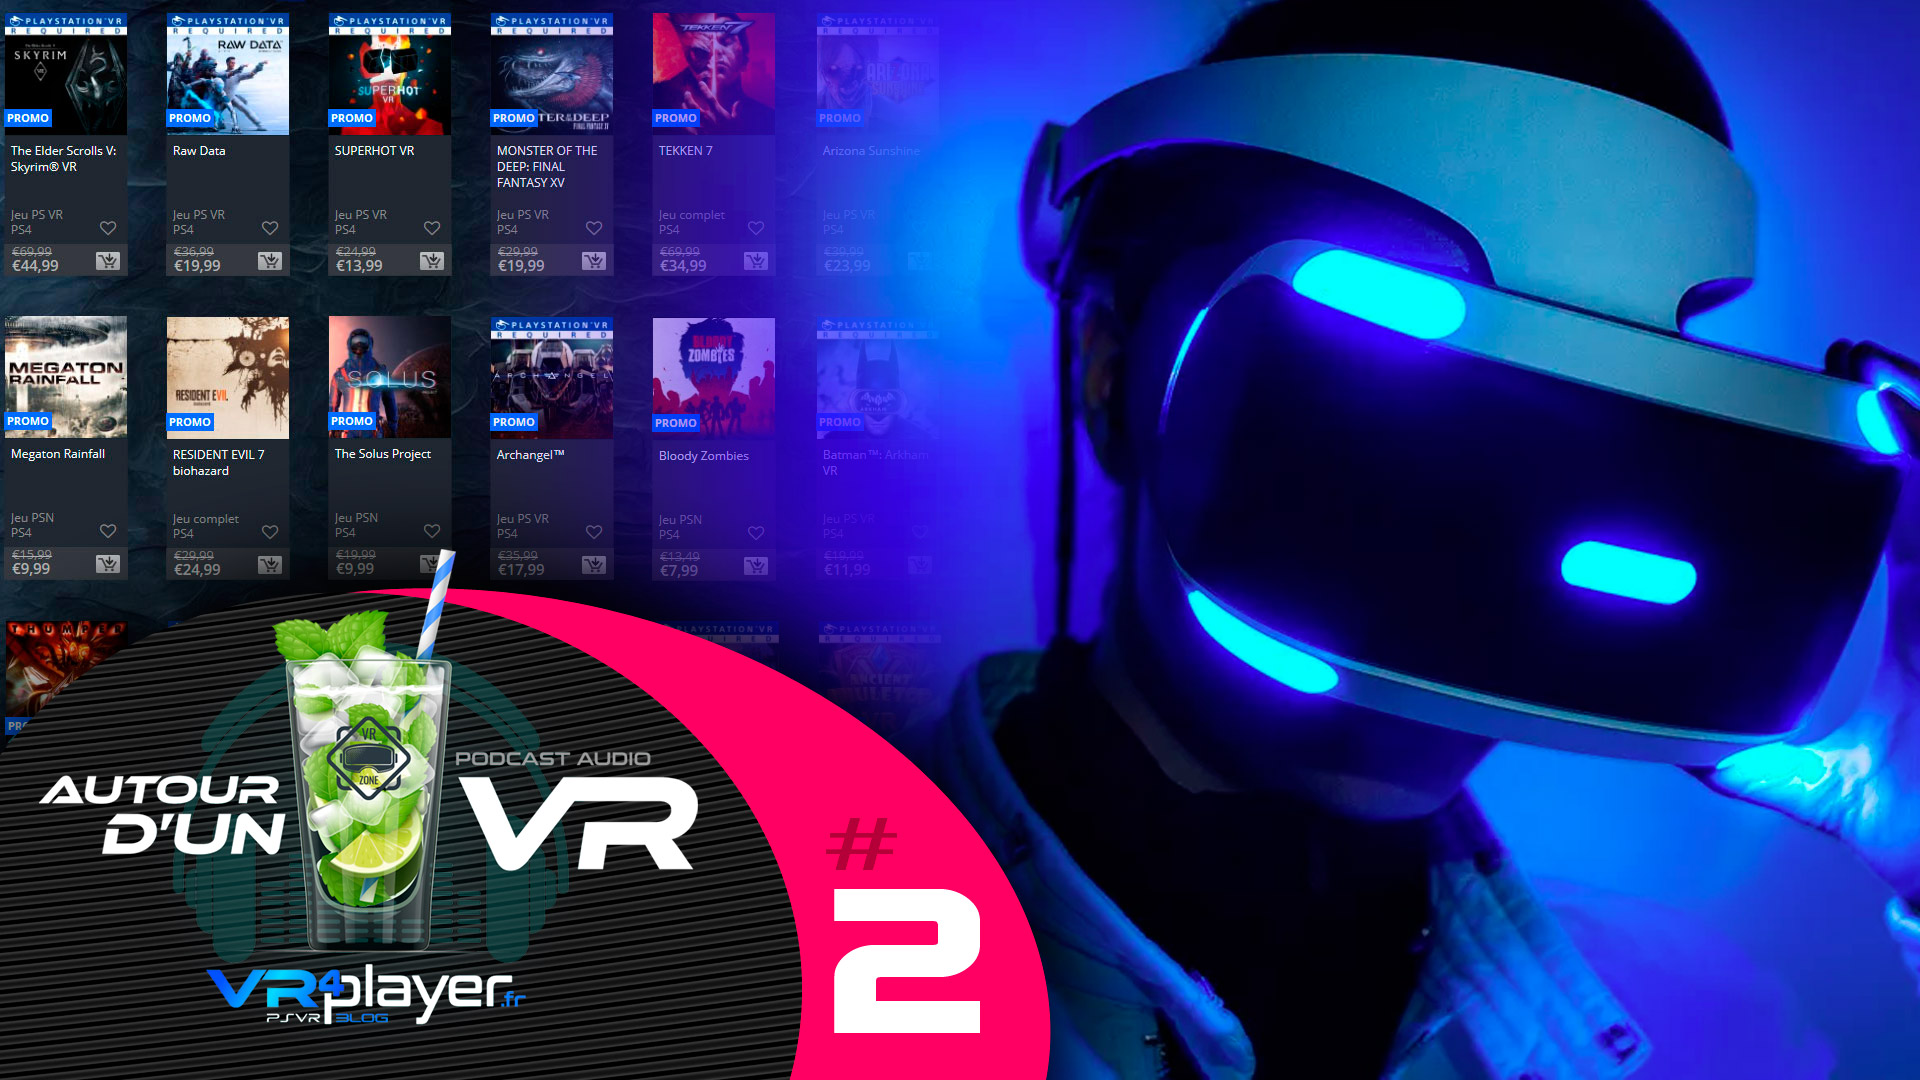 Podcast Autour d'un VR #2 VR4player